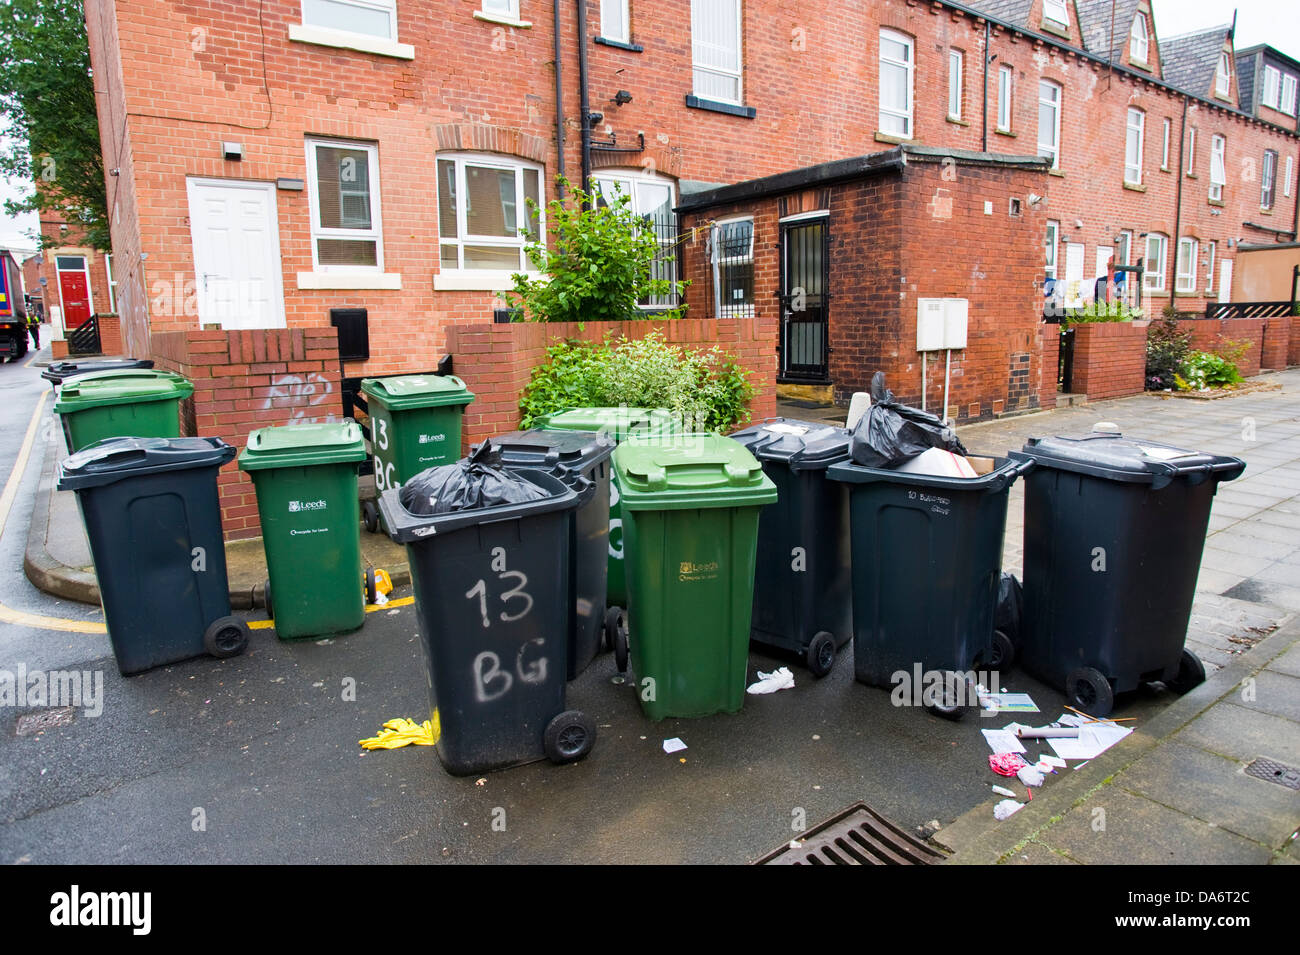 Image result for wheelie bins and rubbish in streets